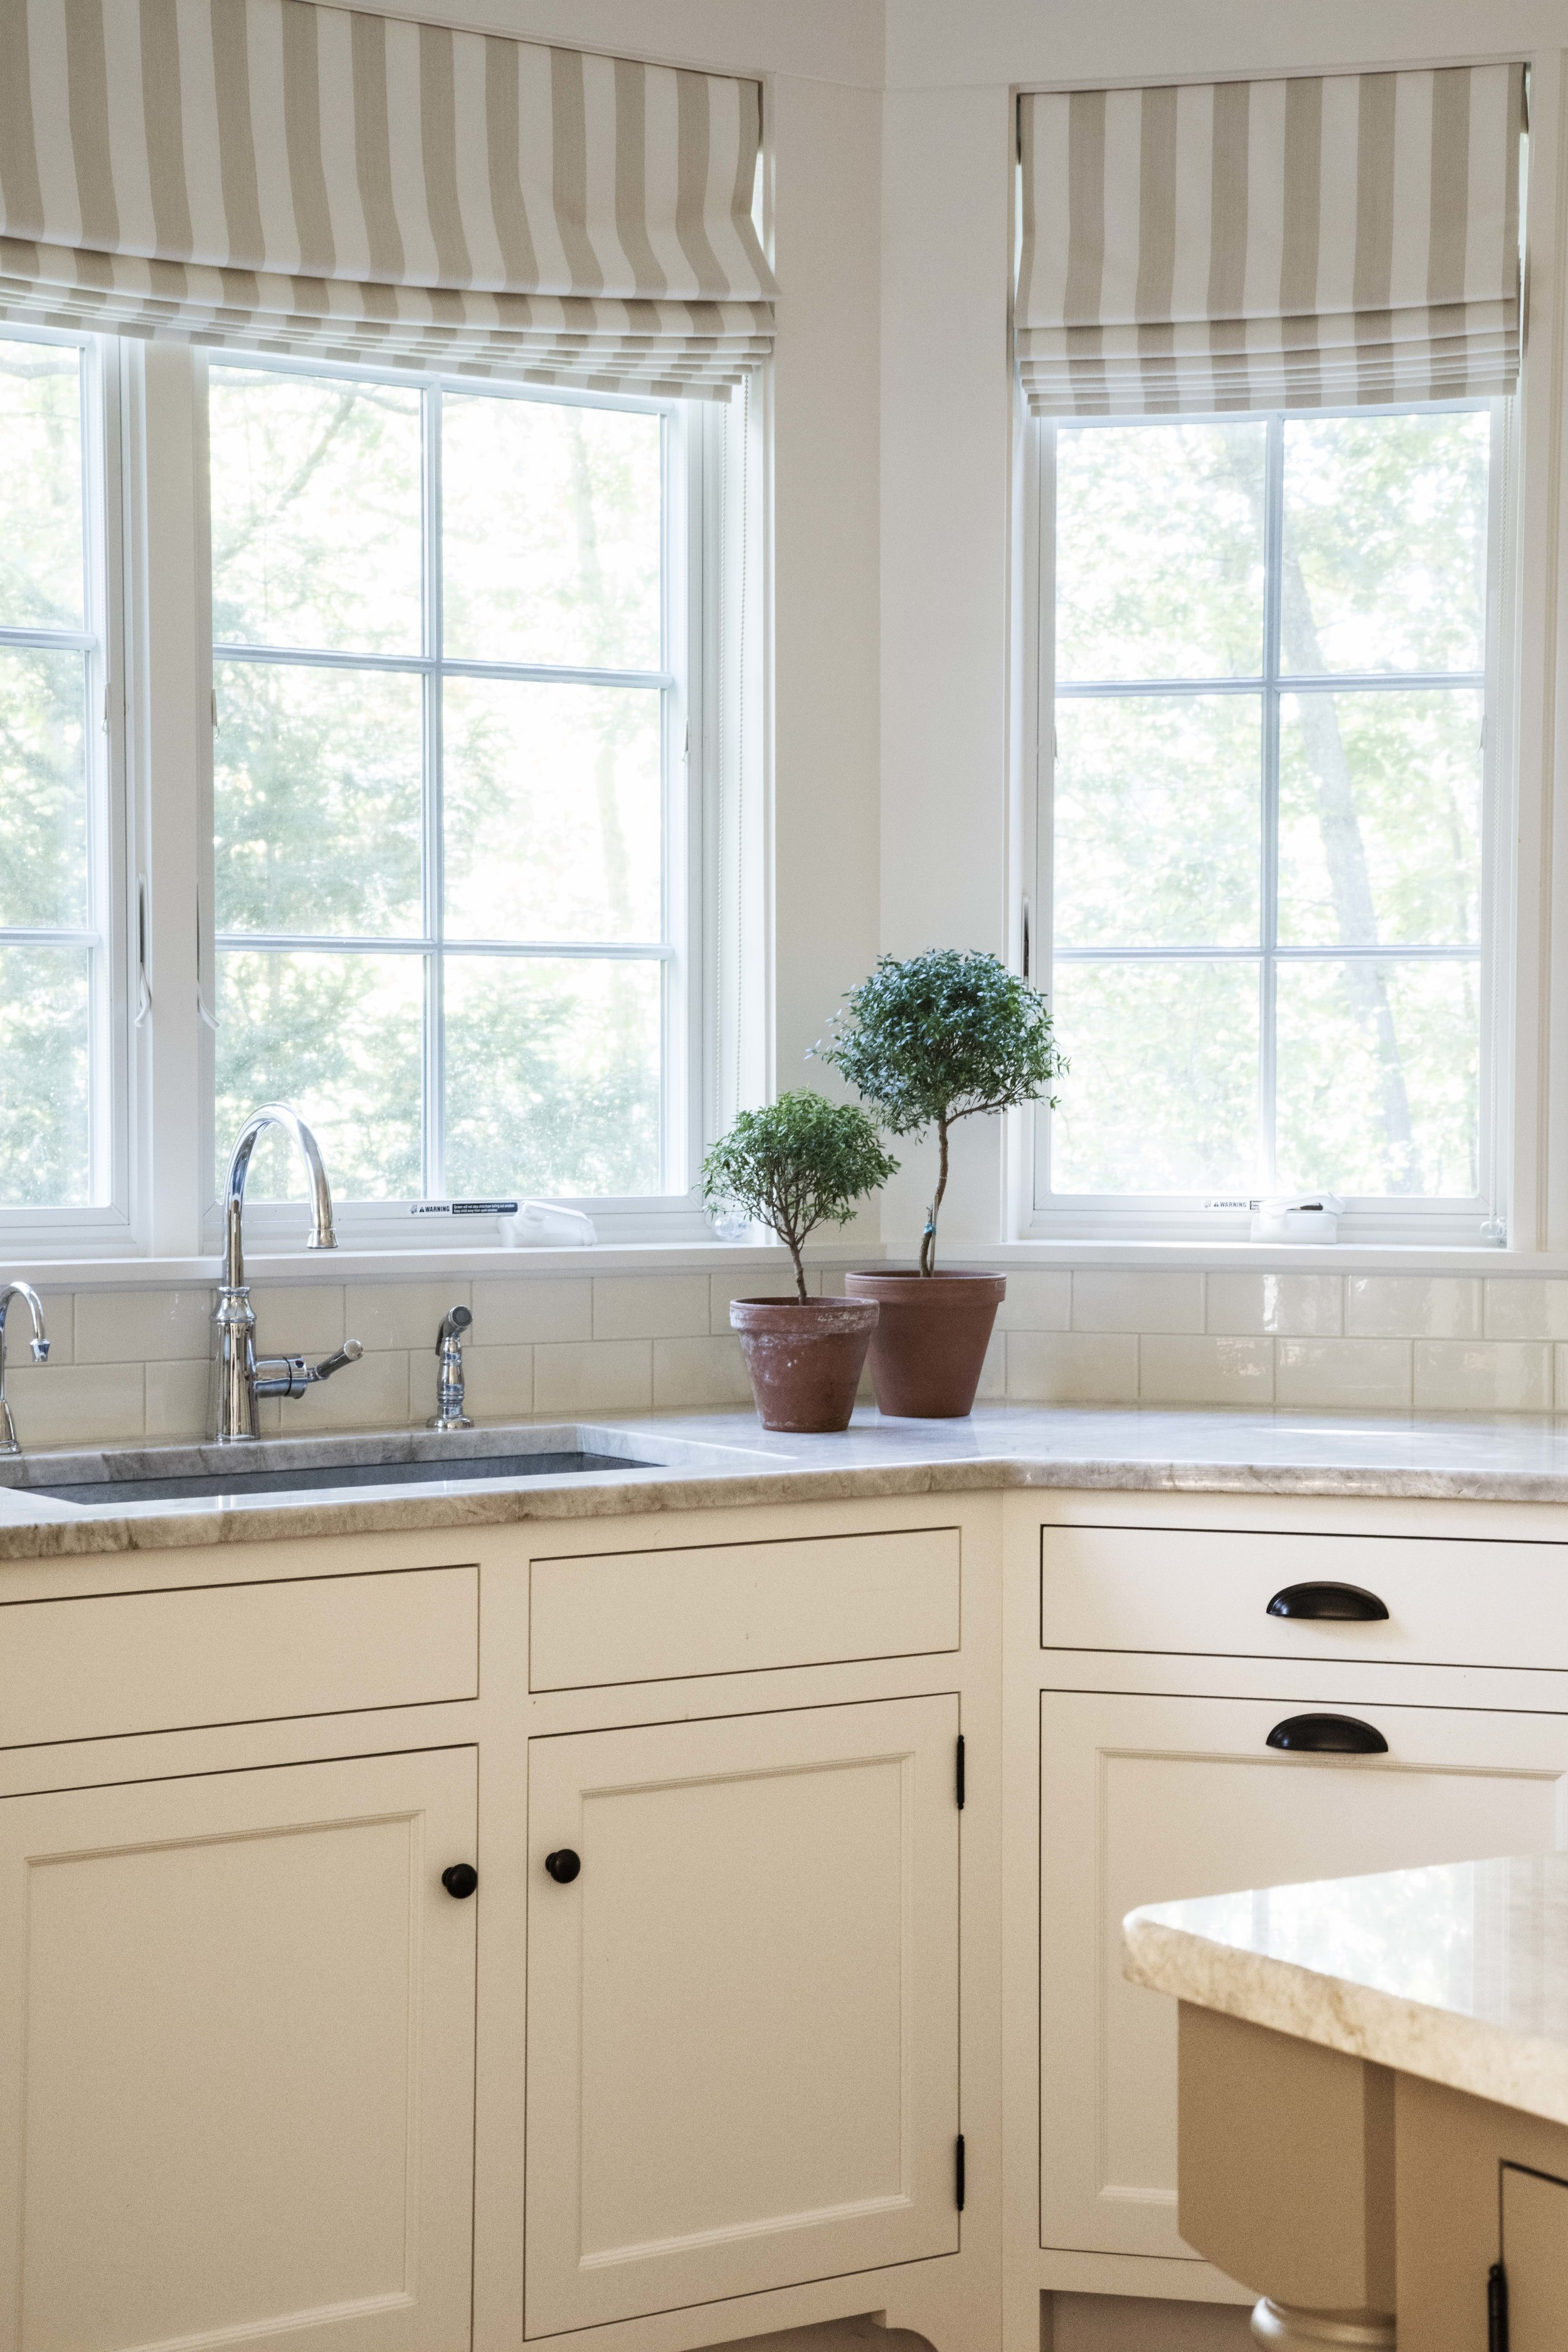 AGA-Lexington-Kitchen-8 copy.jpg